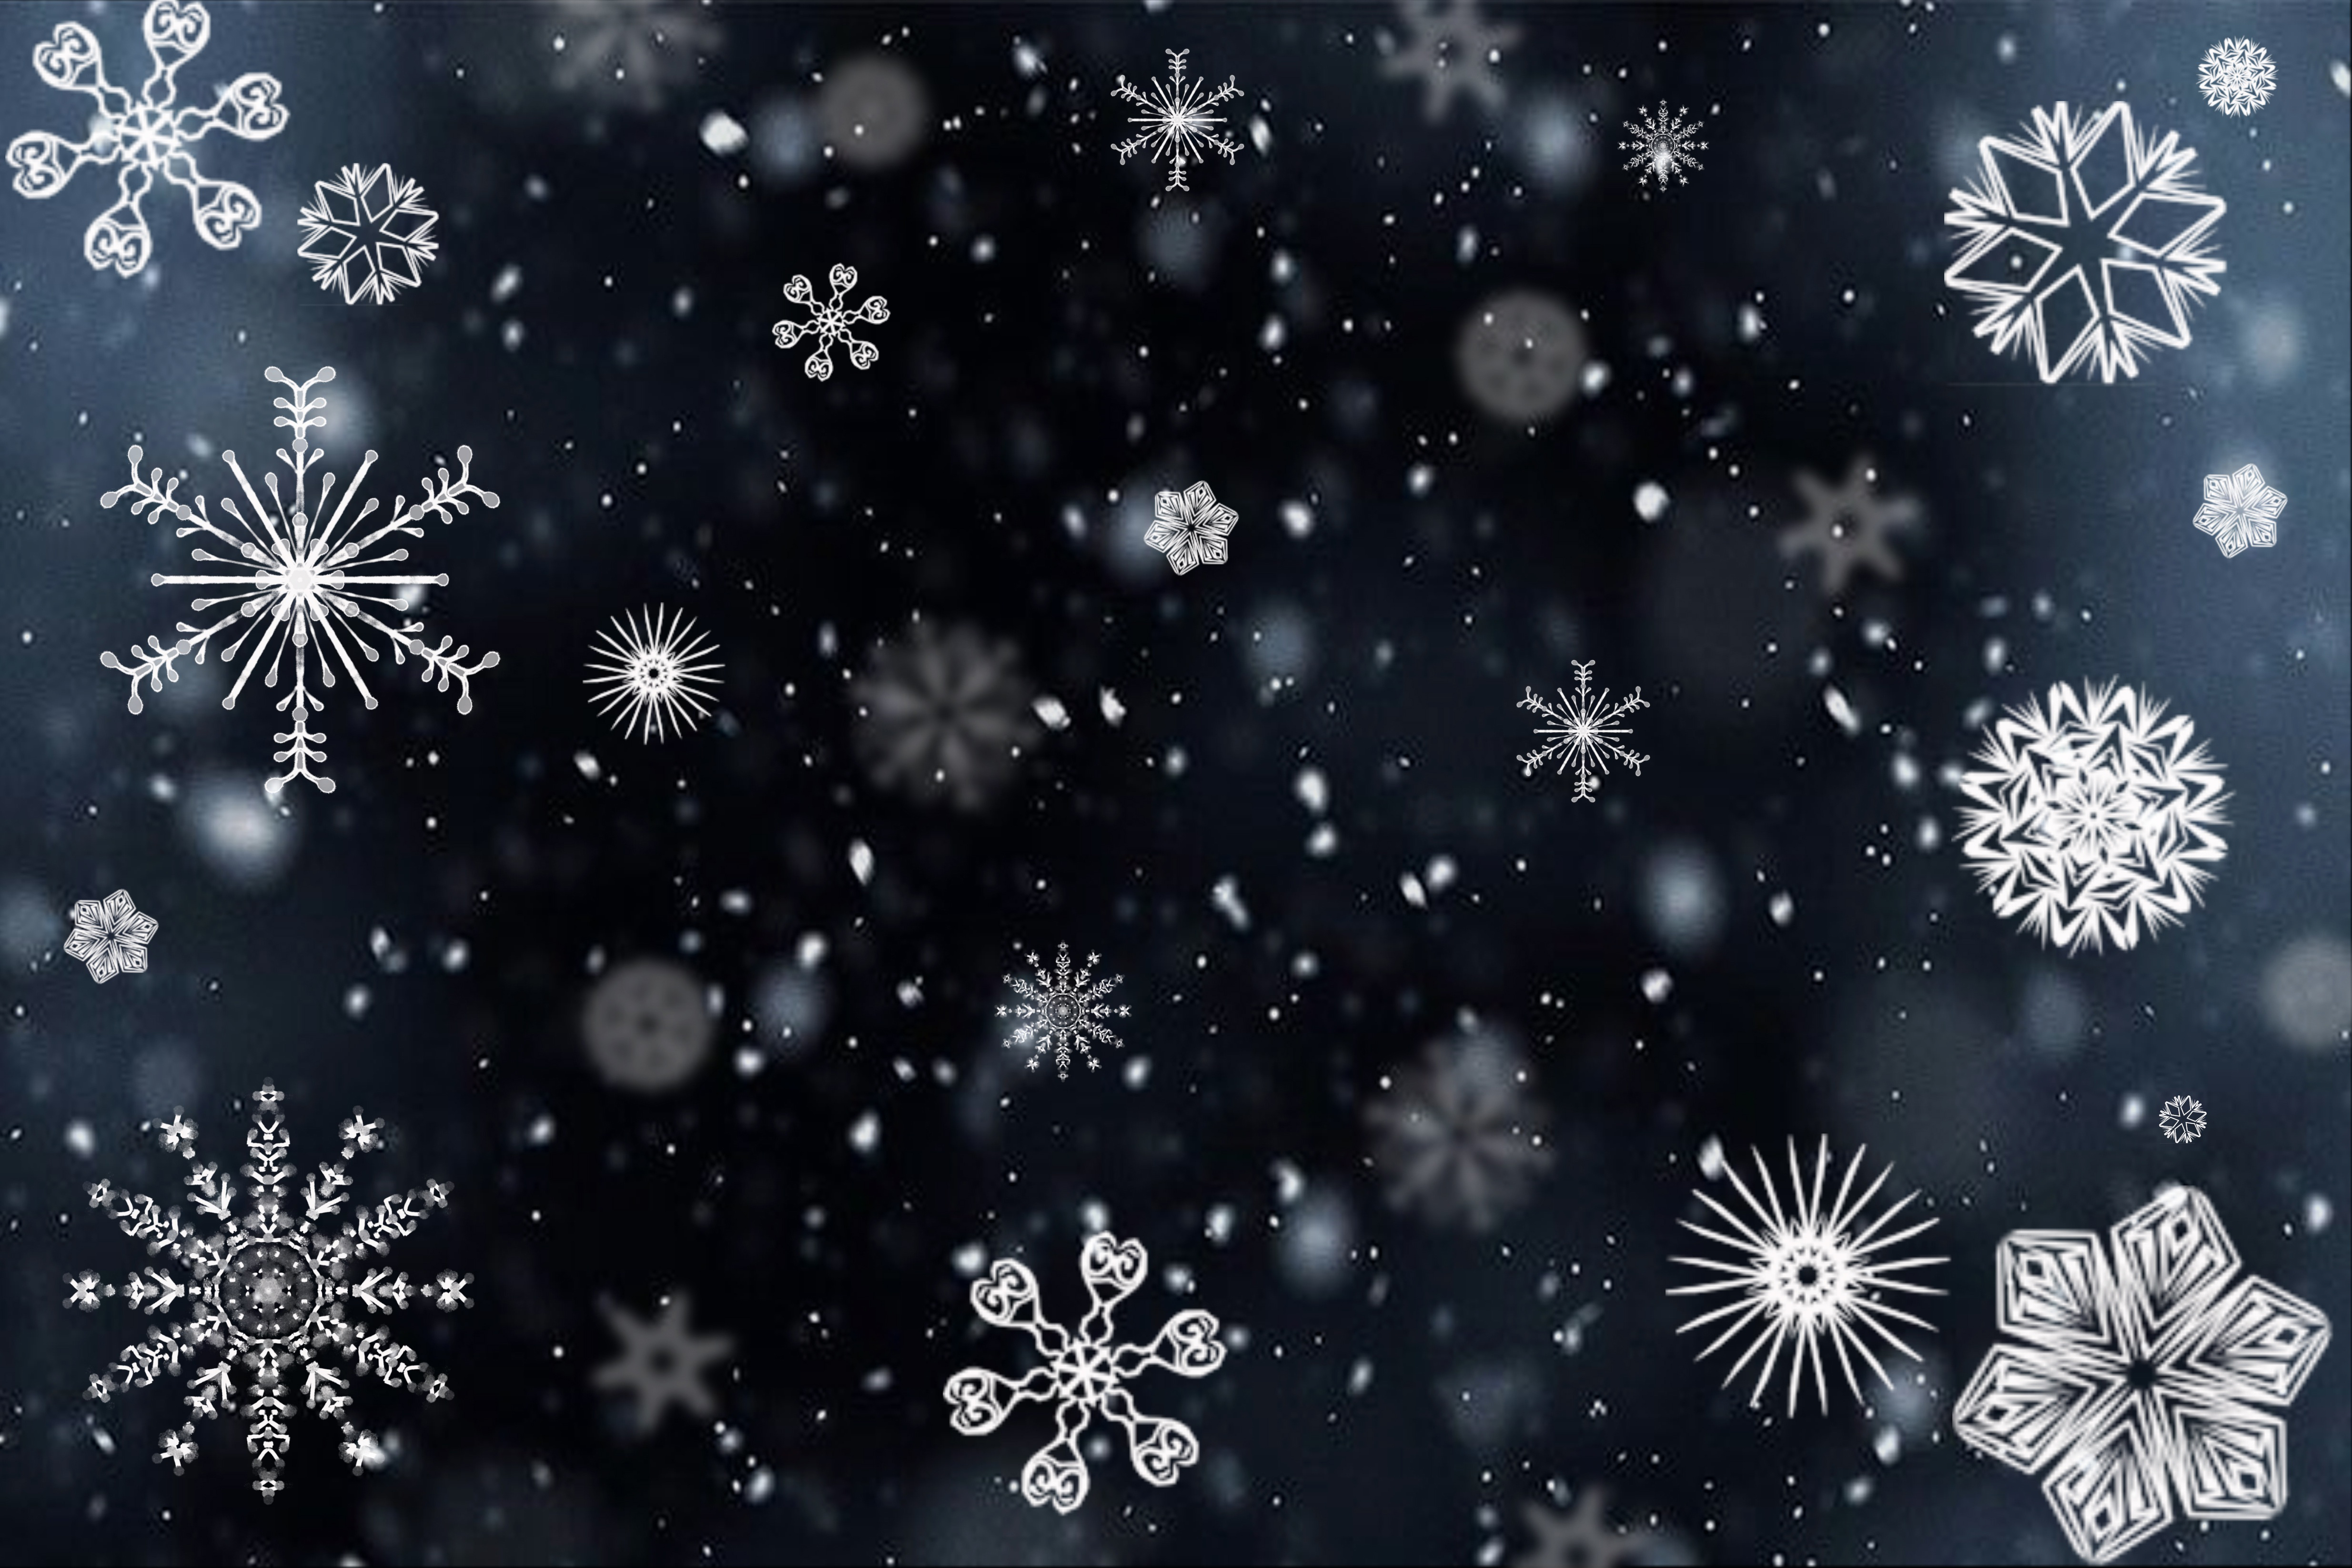 Snowflake,christmas,snow,cold,background